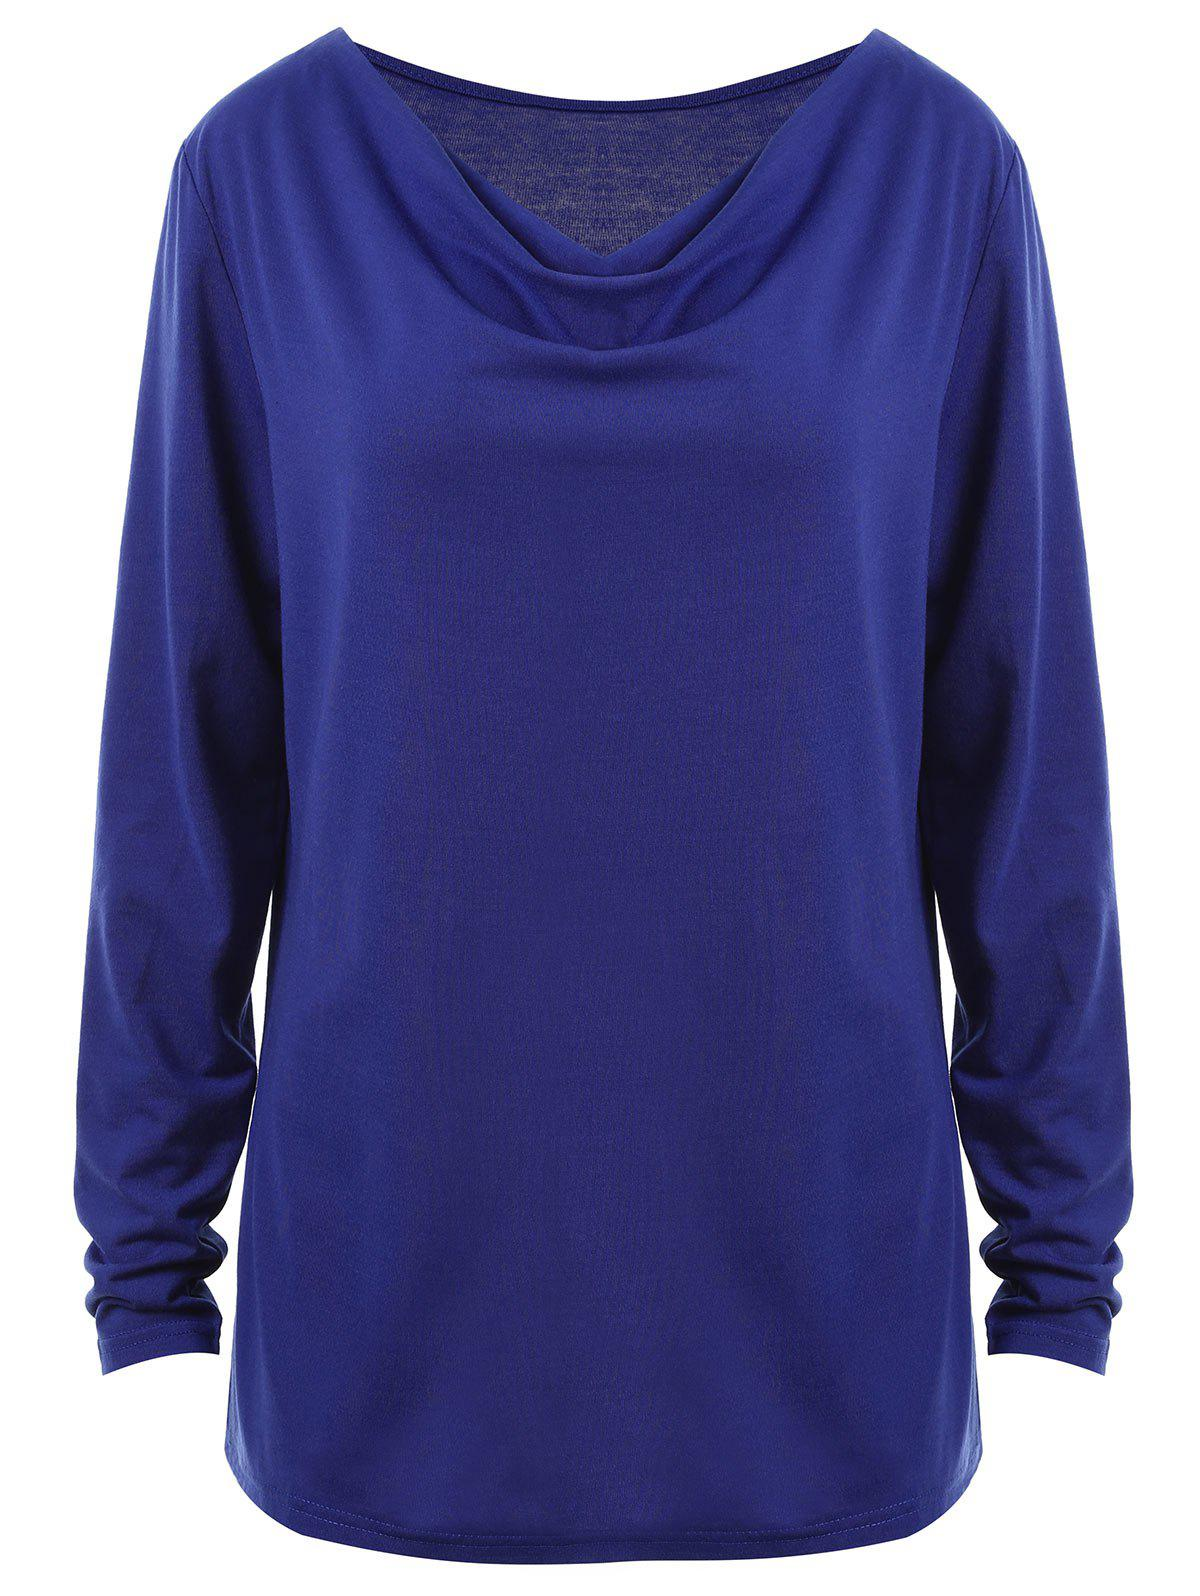 Plus Size Cowl Neck Long Sleeve Tee - BLUE 2XL